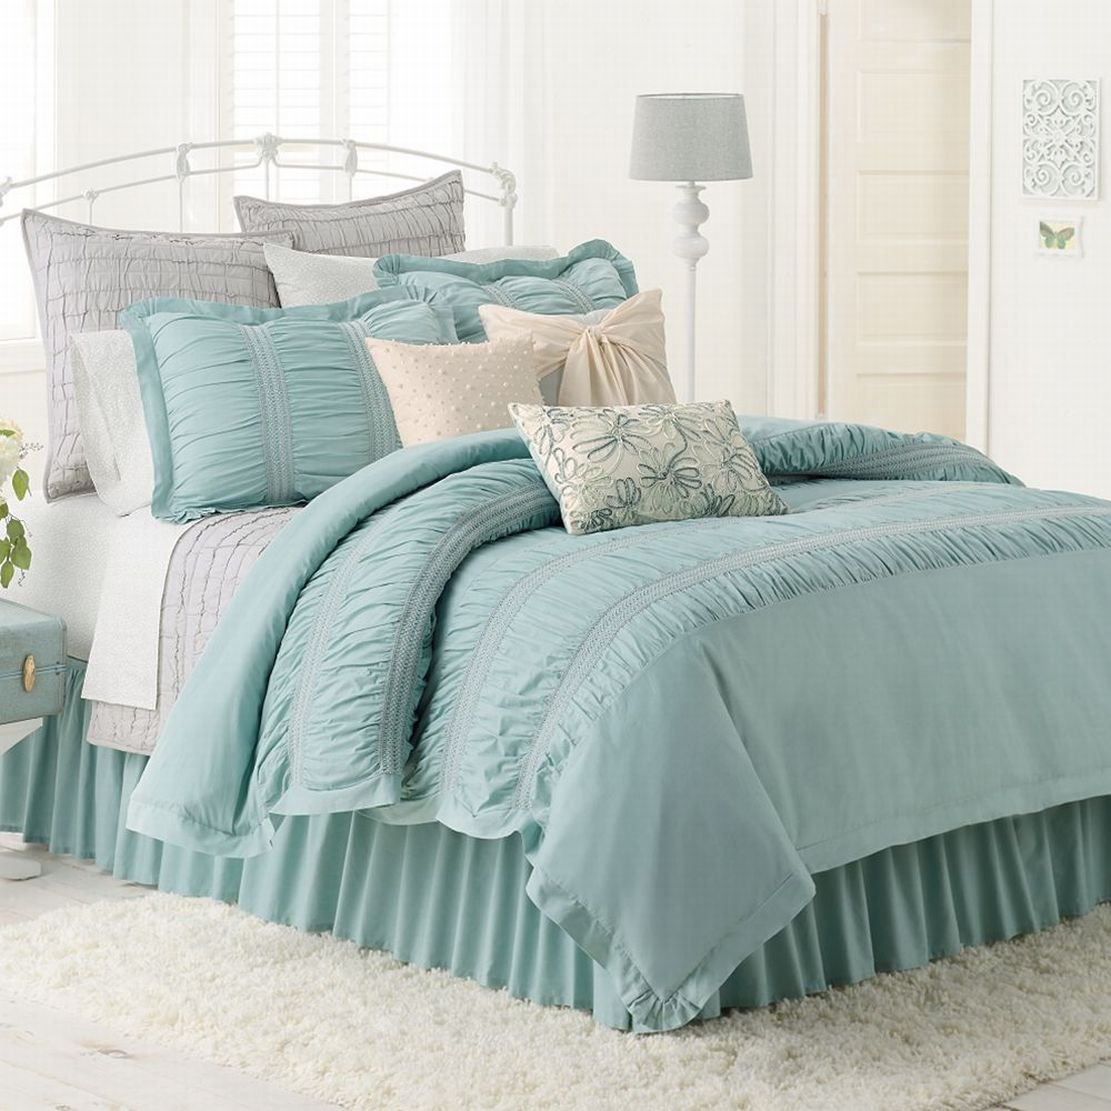 amazoncom lc lauren conrad lily reversible comforter set pretty blue twintwin xl bed 2 pc home u0026 kitchen